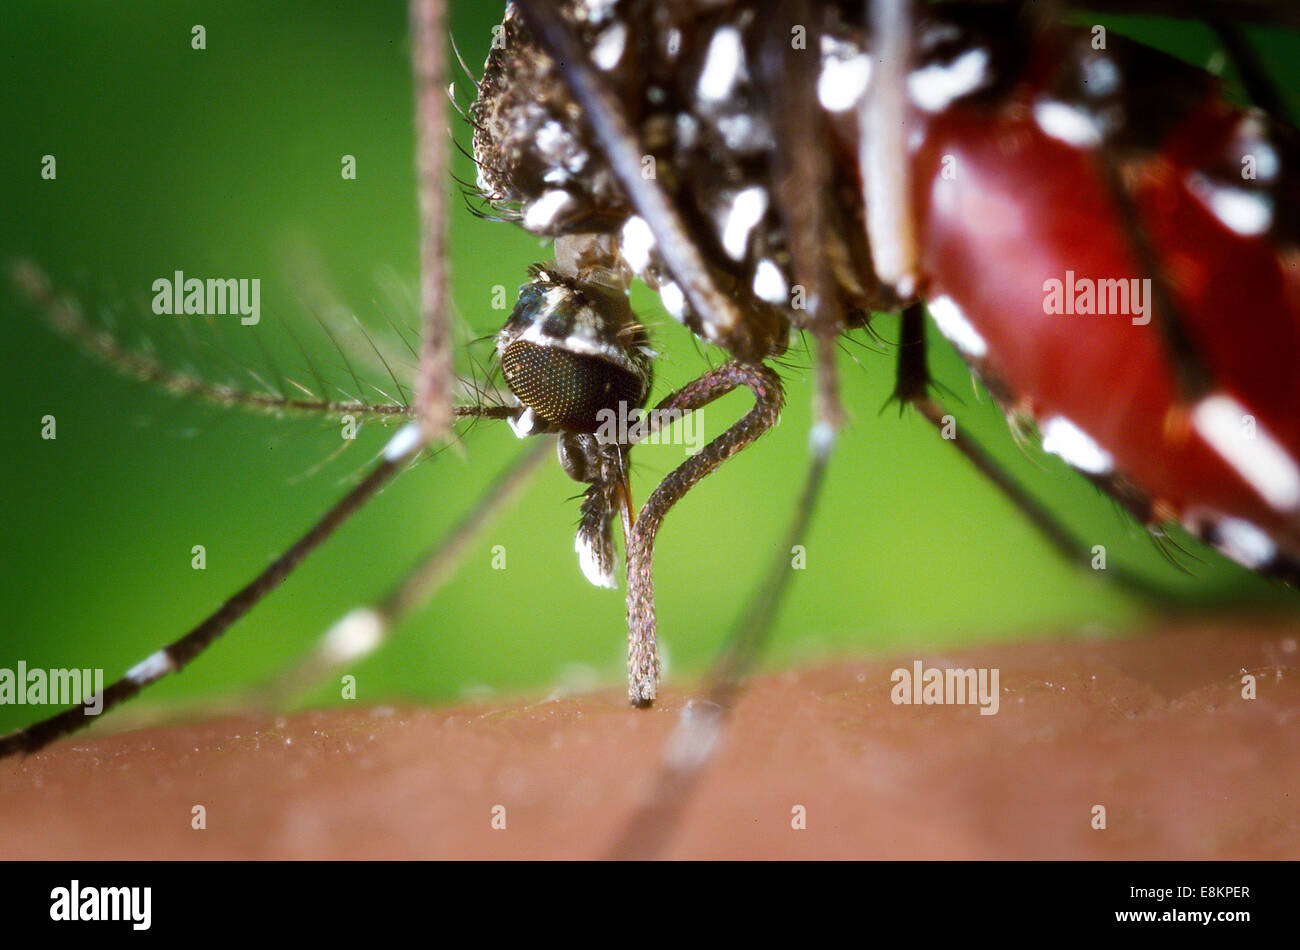 The proboscis of an Aedes albopictus mosquito feeding on human blood Under experimental conditions Aedes albopictus - Stock Image